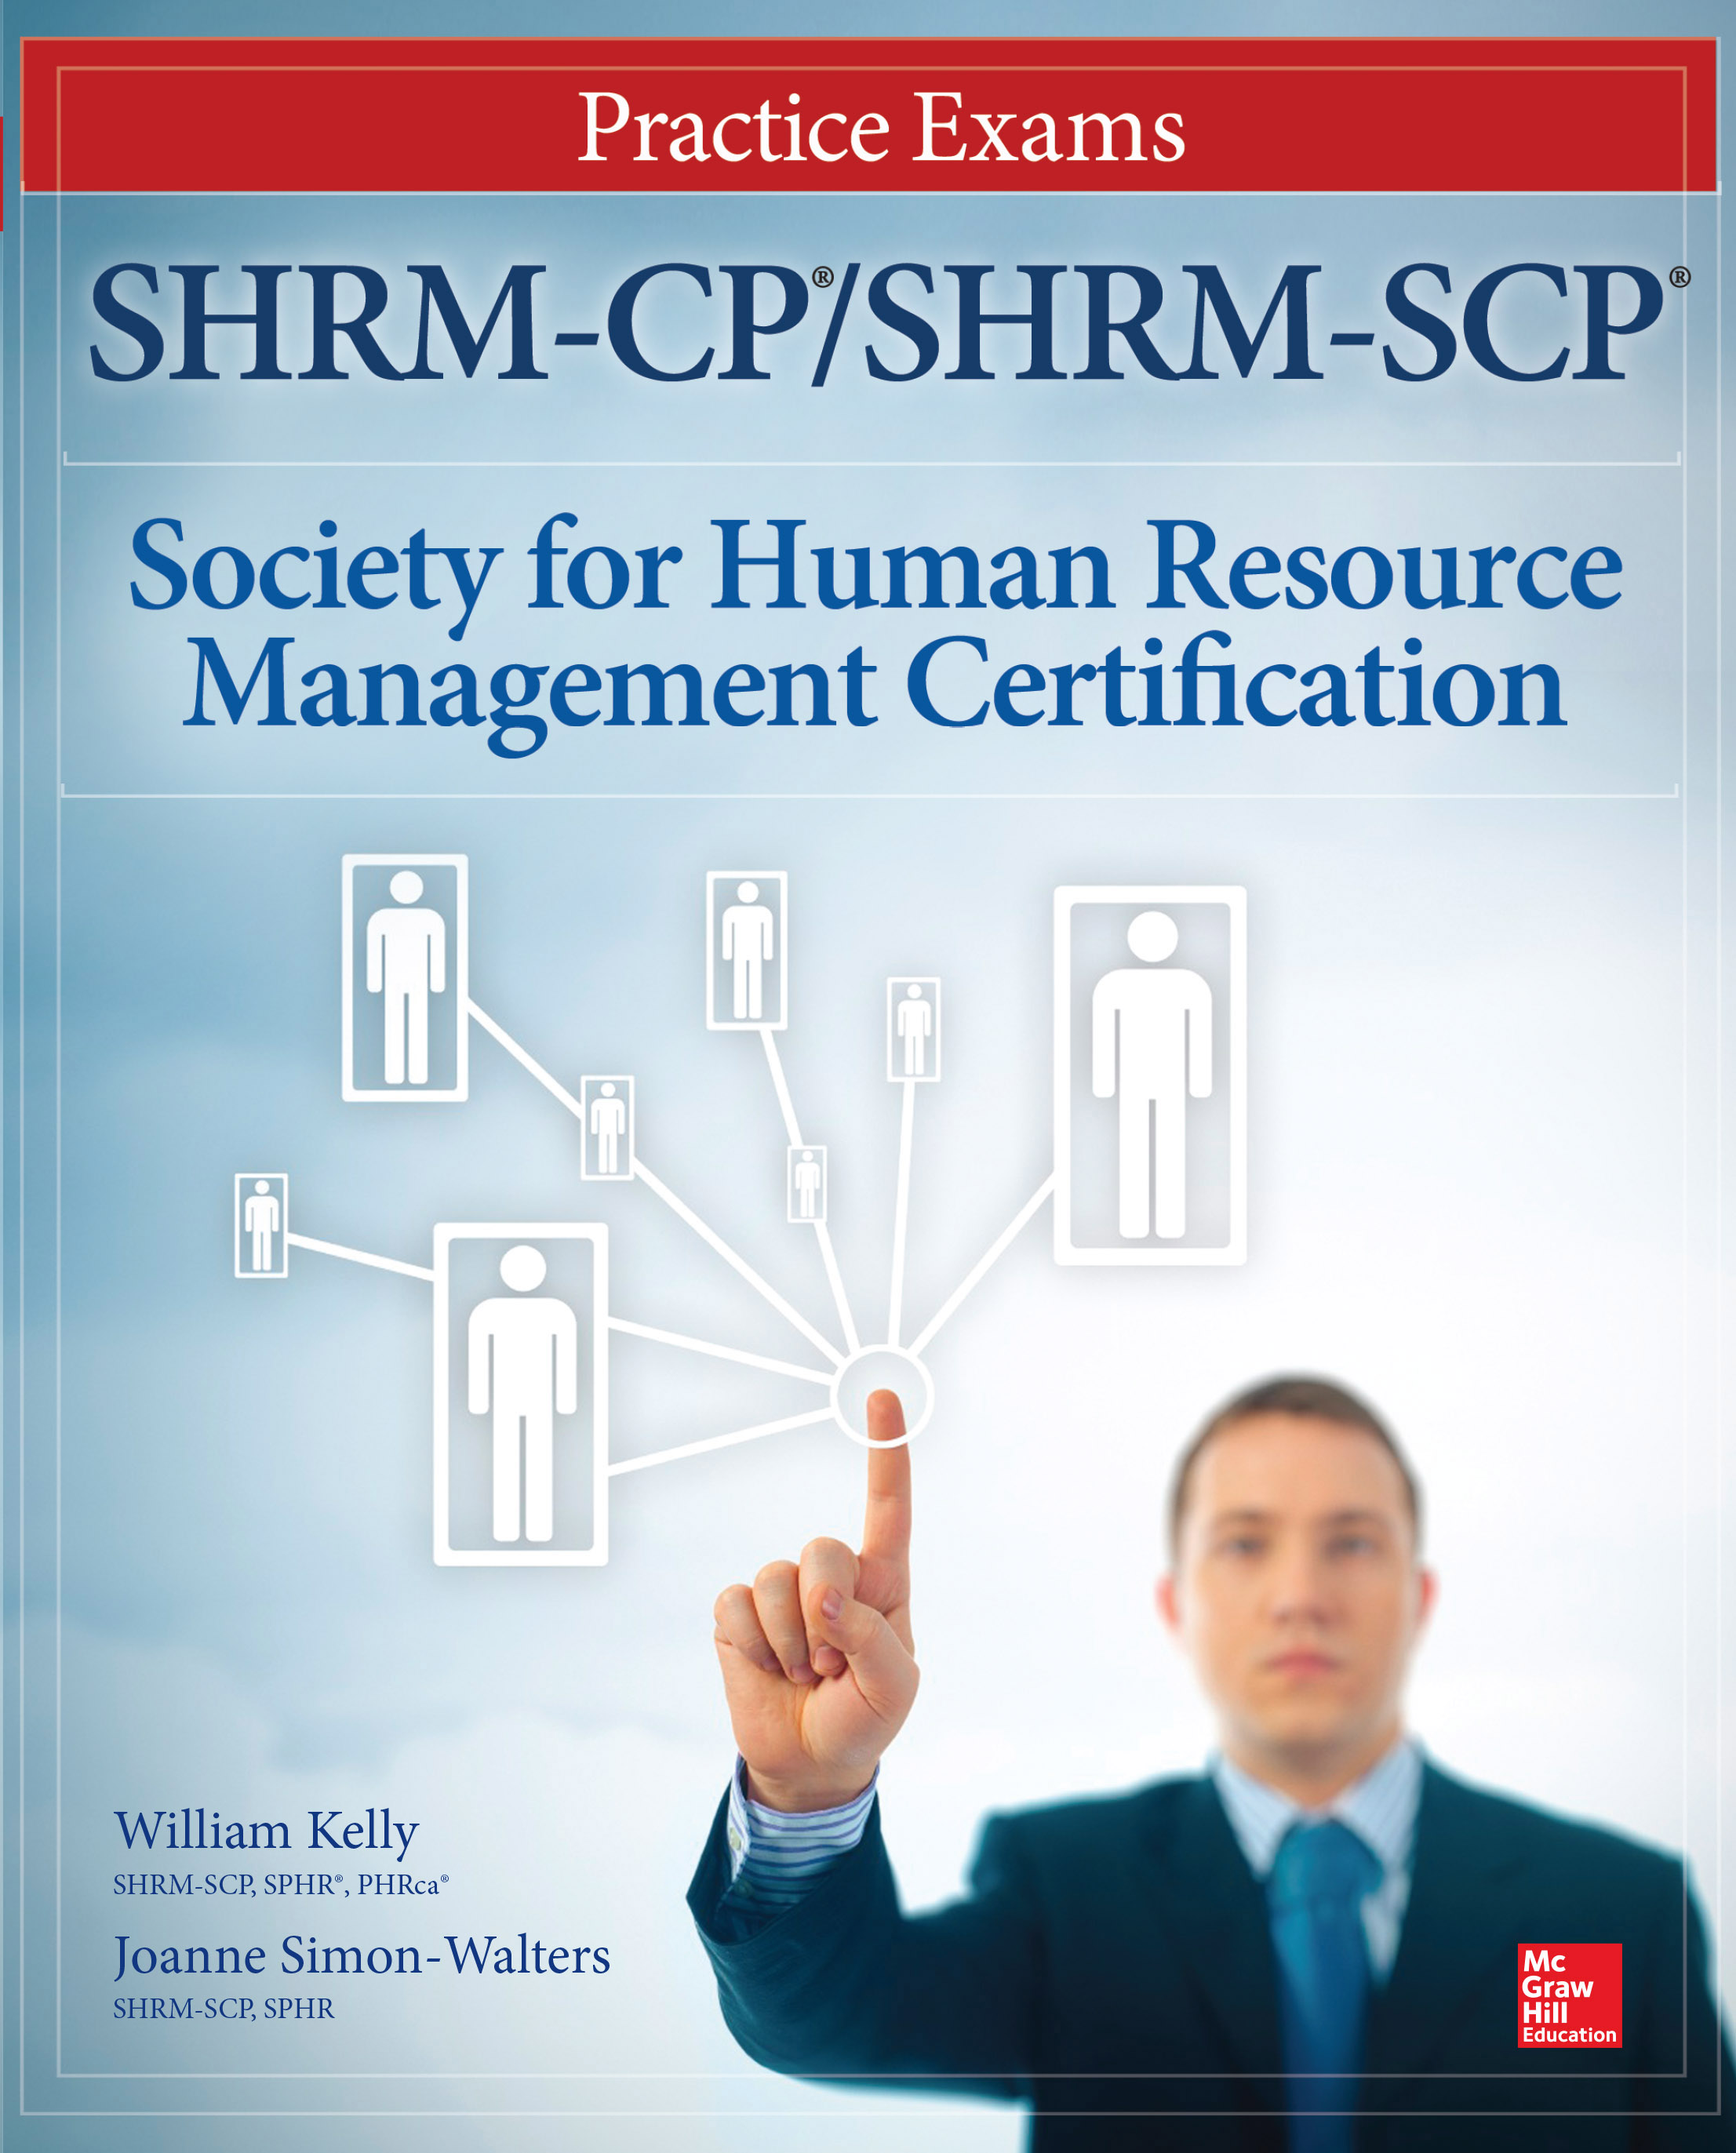 Download Ebook SHRM-CP/SHRM-SCP Certification Practice Exams by William D. Kelly Pdf